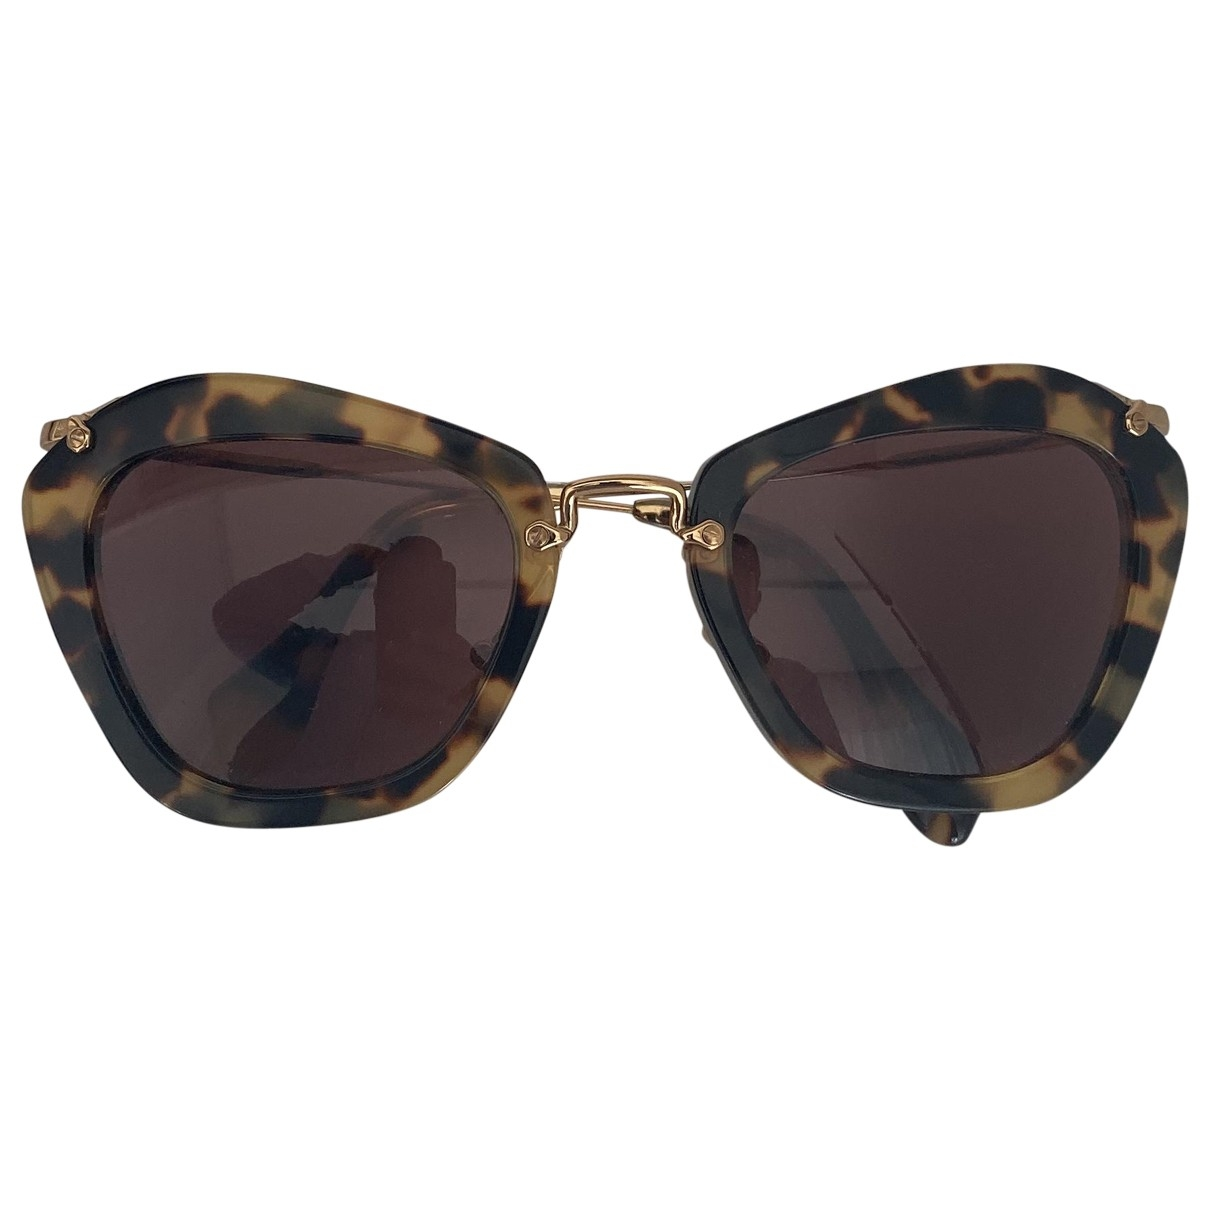 Miu Miu \N Brown Sunglasses for Women \N